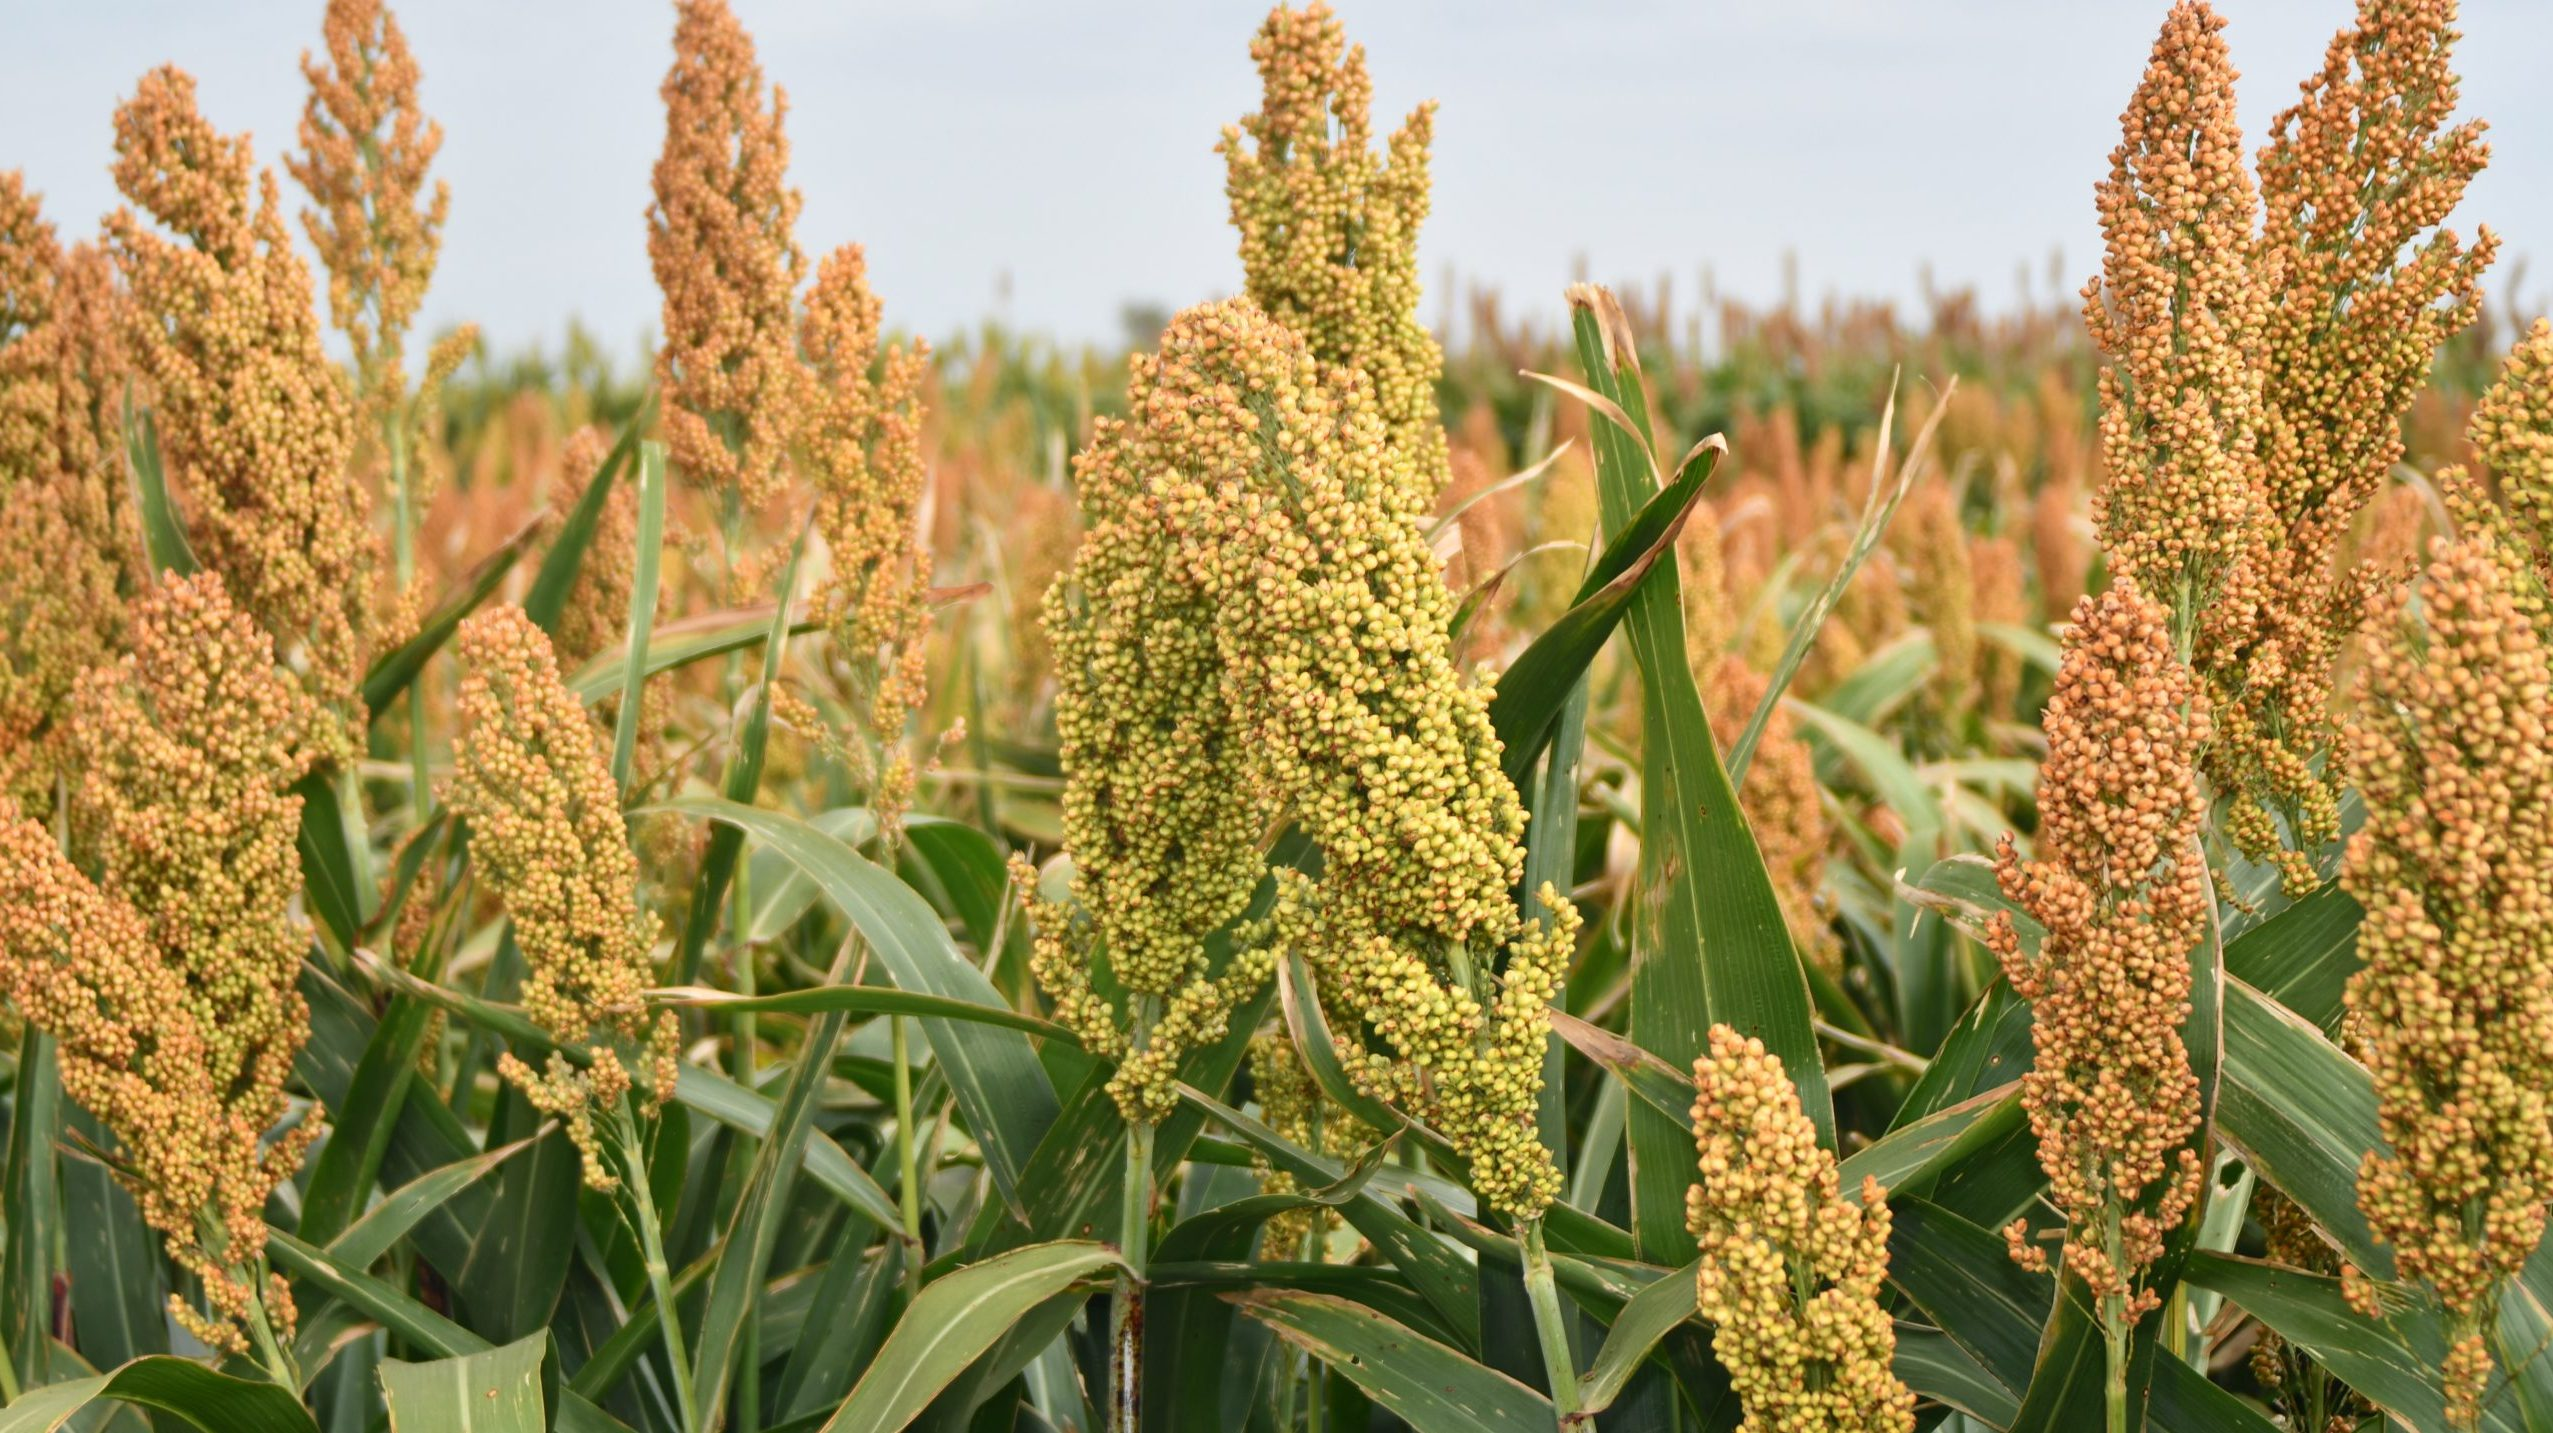 Southeastern United States Sorghum Production